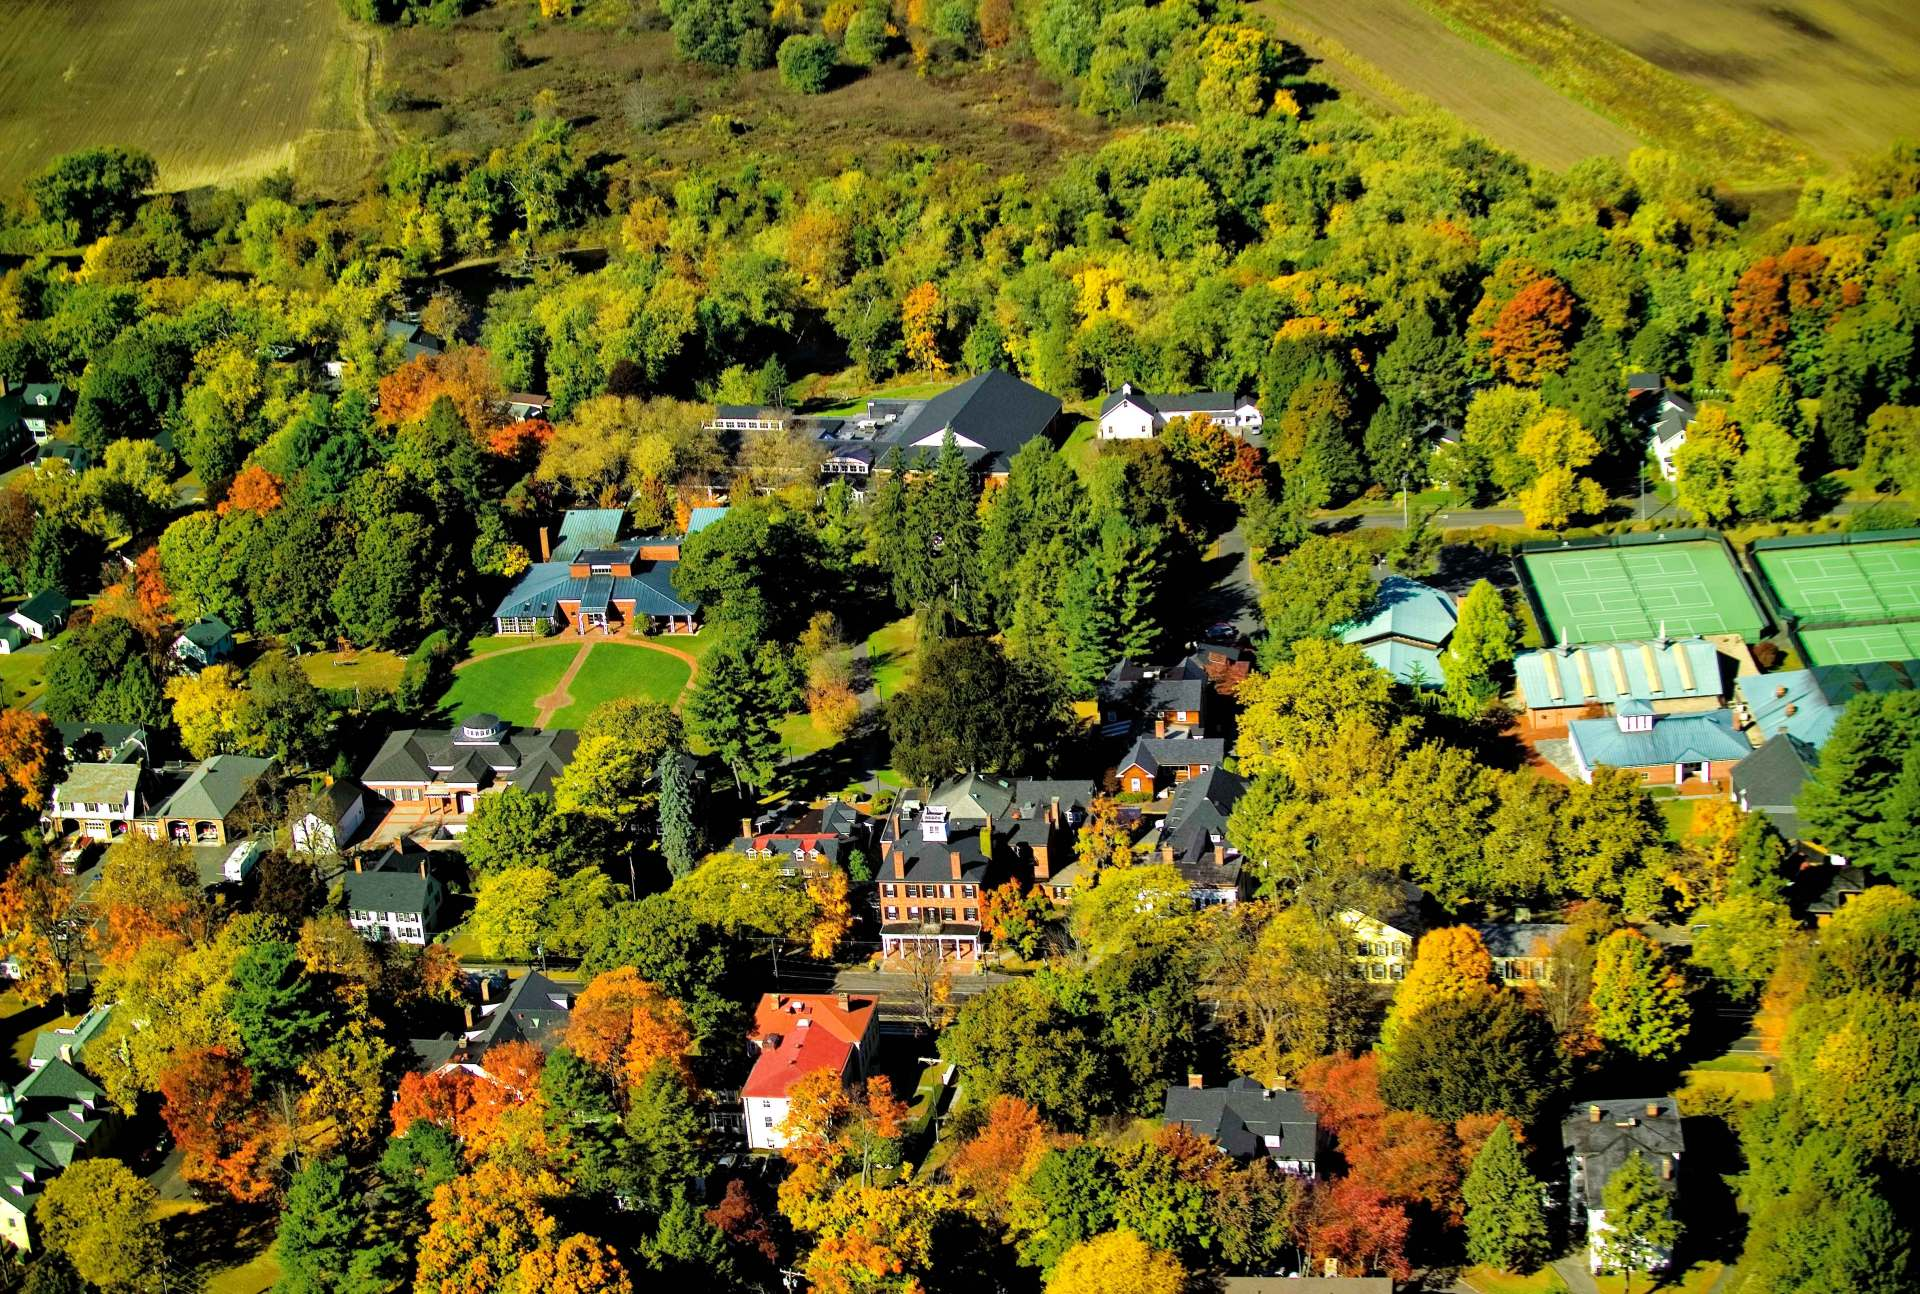 Our campus, located in the center of Farmington, Connecticut.